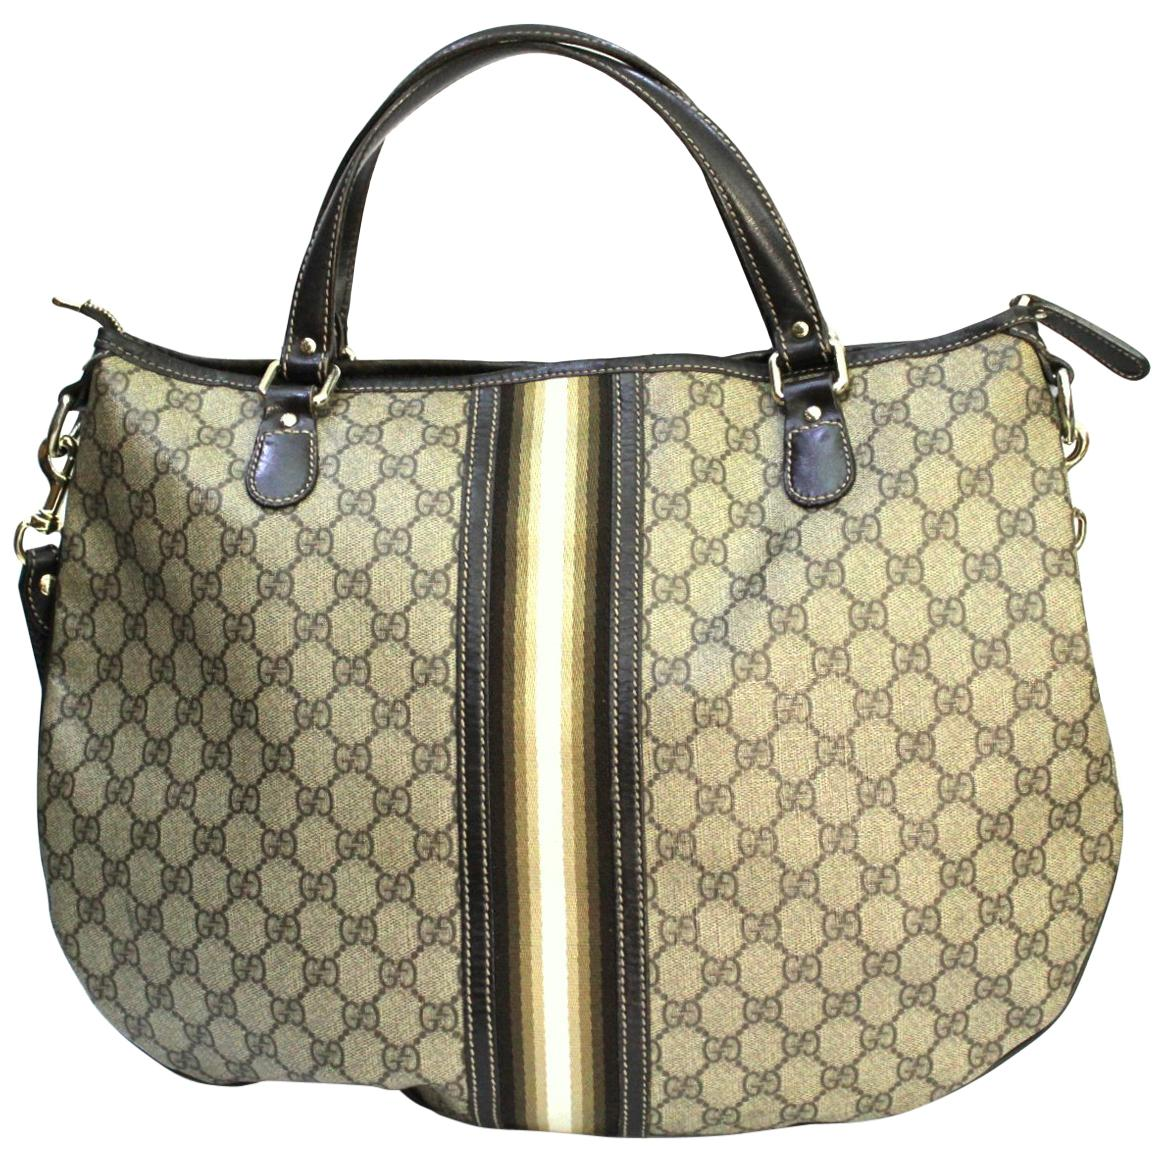 7a9cea6bf9d Gucci Dionysus Chevron Ayers Bag For Sale at 1stdibs